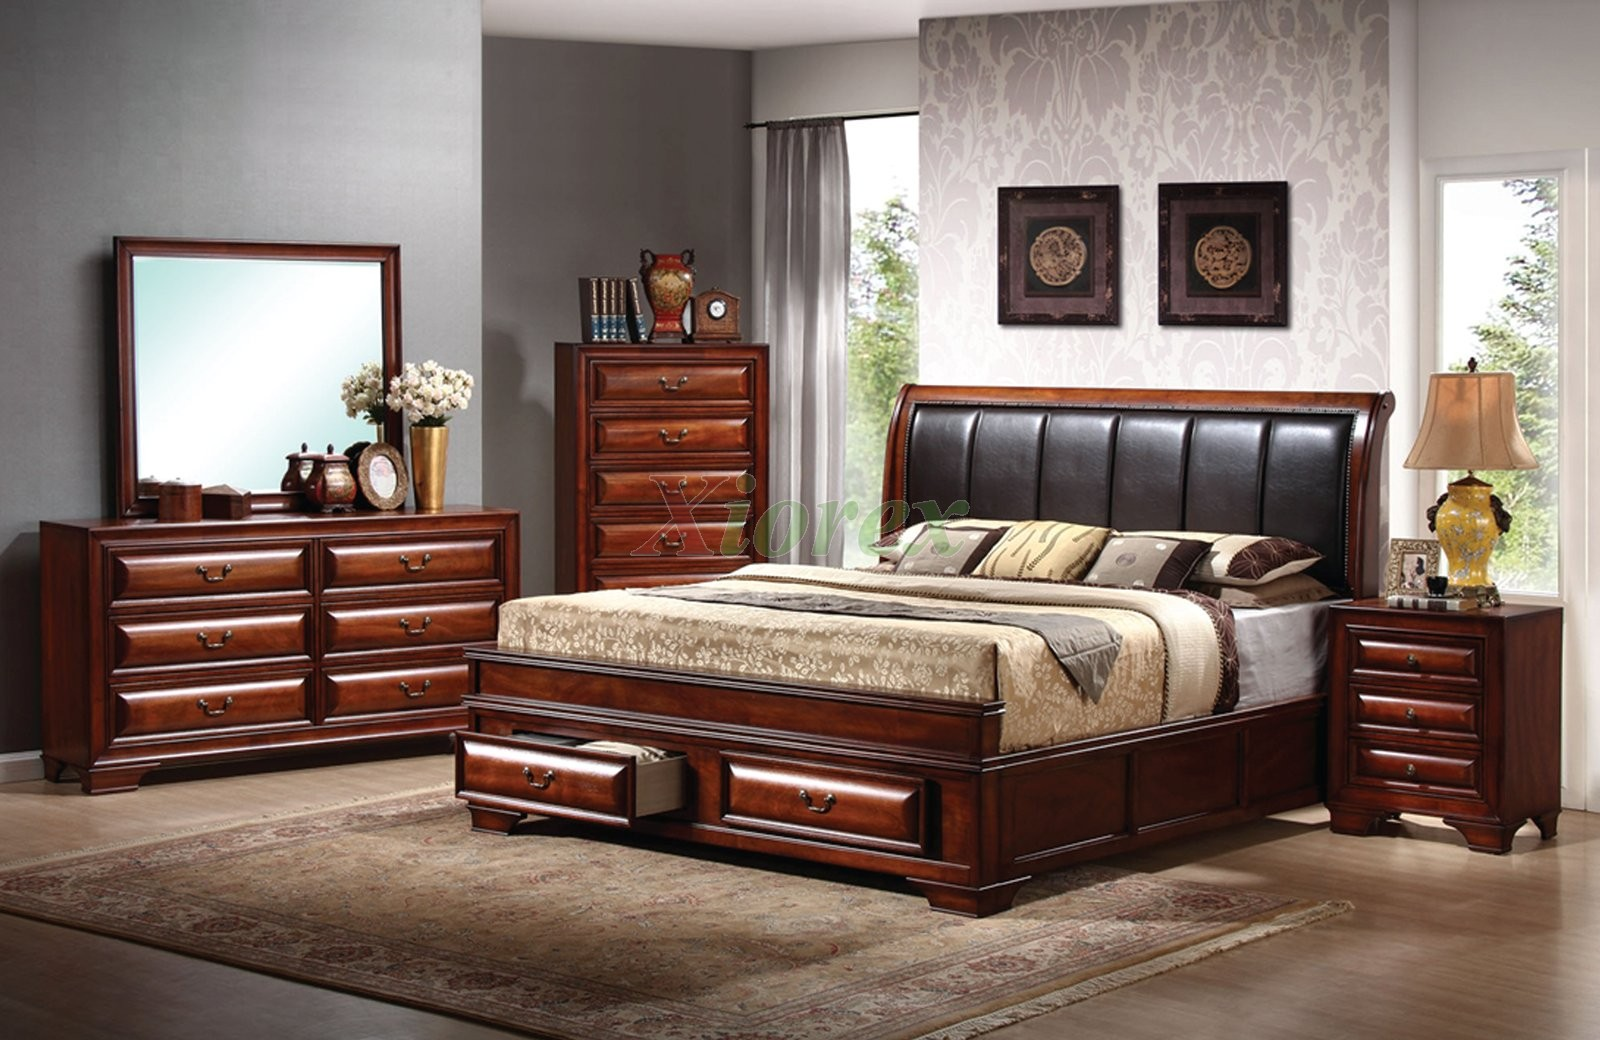 platform bedroom furniture set with leather headboard beds On leather bedroom furniture